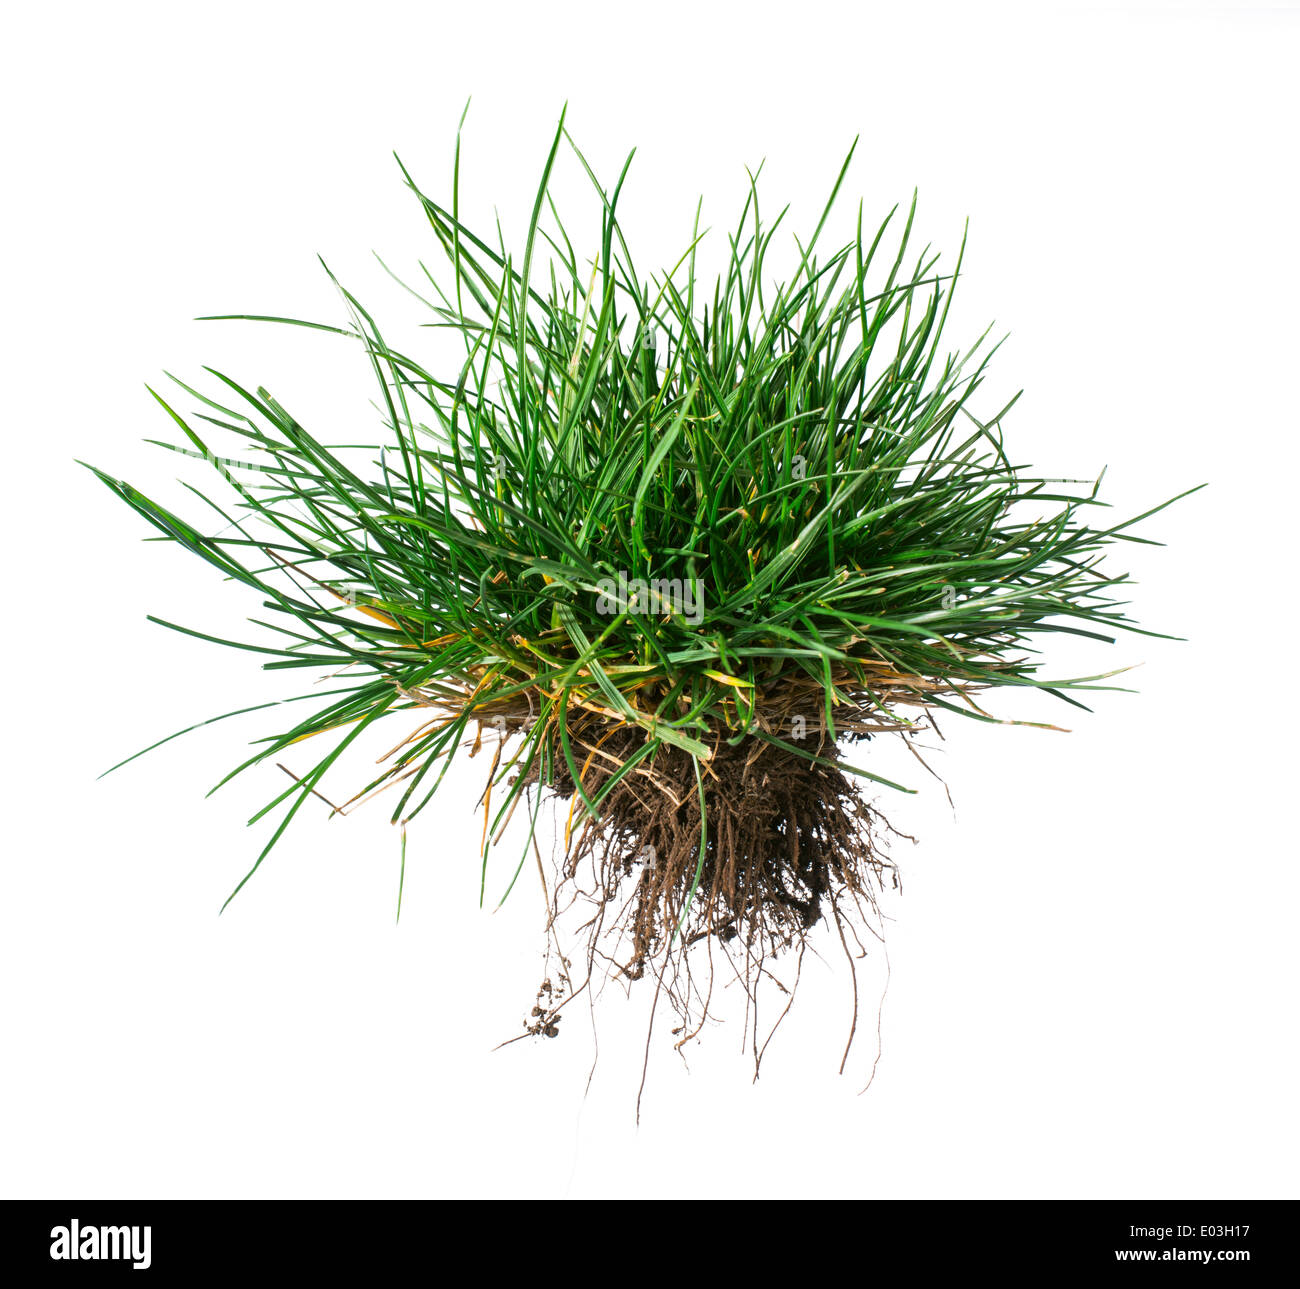 White isolated turf grass and earth. Rhizome - Stock Image